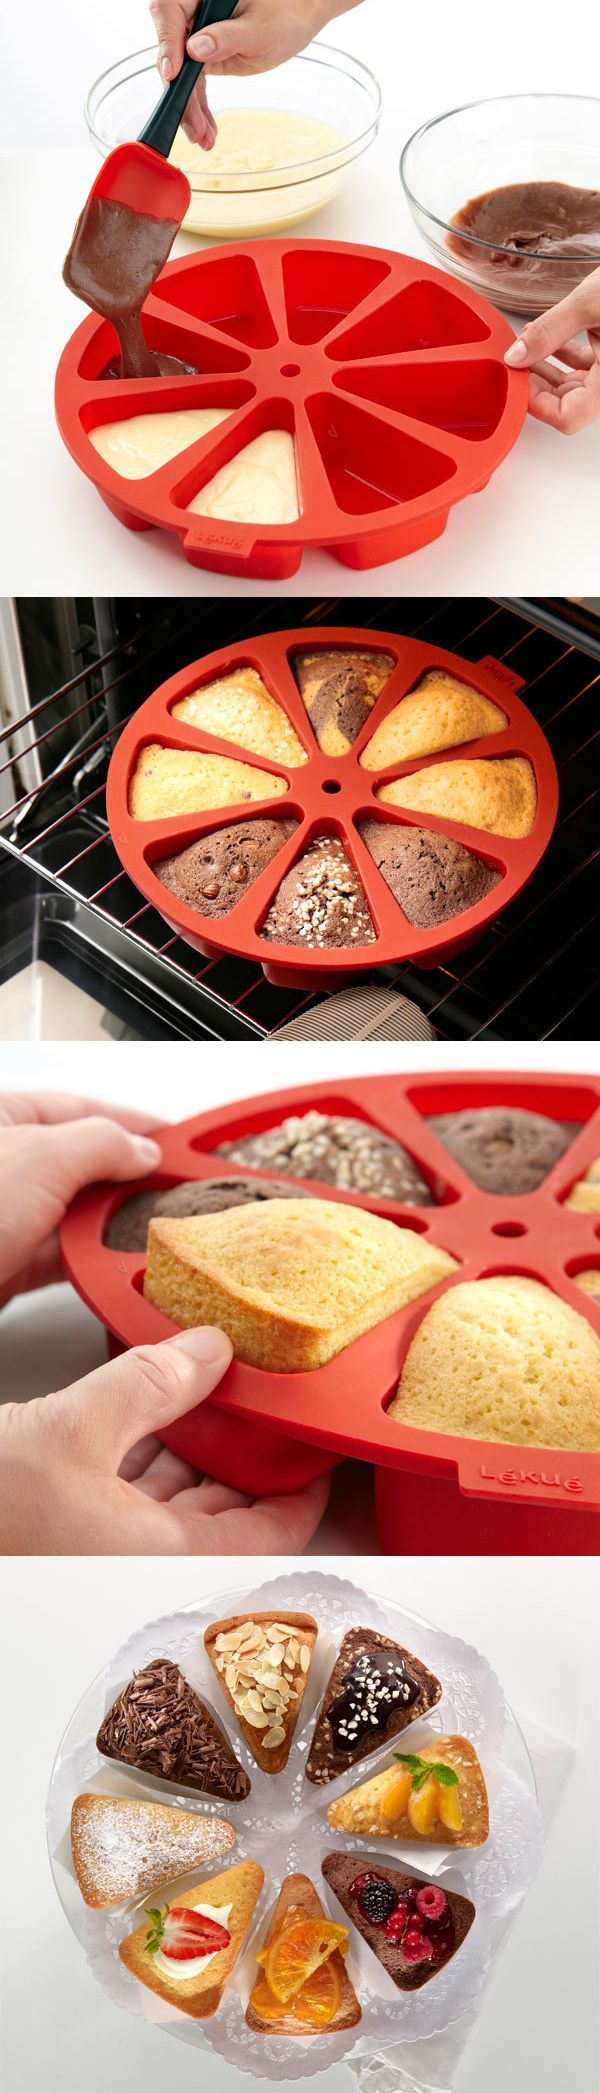 Cake mold for individual slices. I want one!